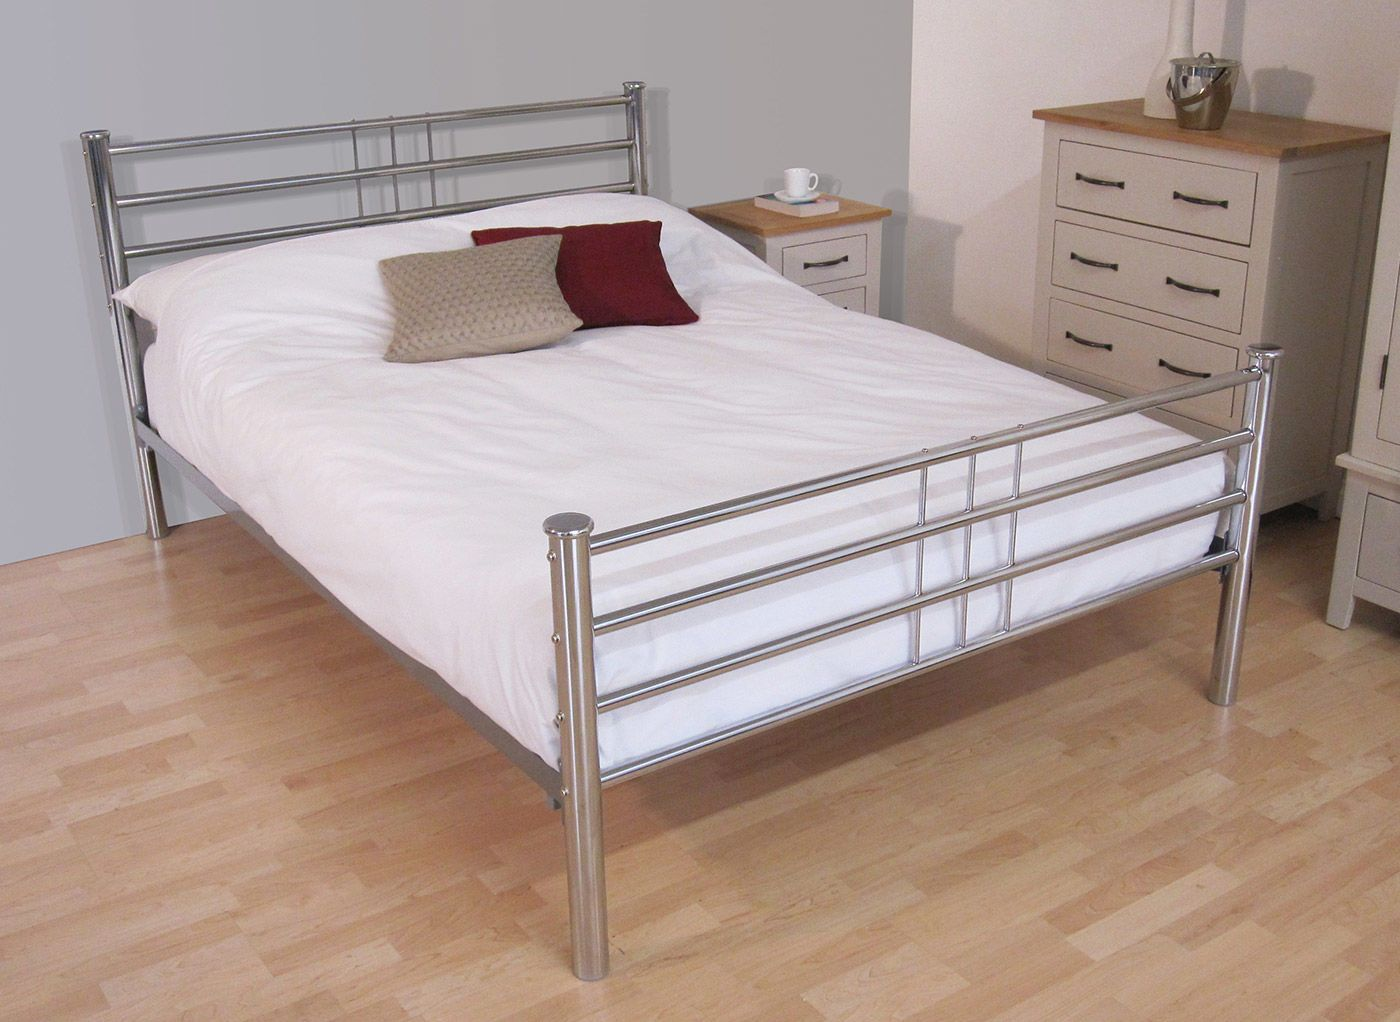 Delightful Metal Beds For Sal Full Size Bed Frames For